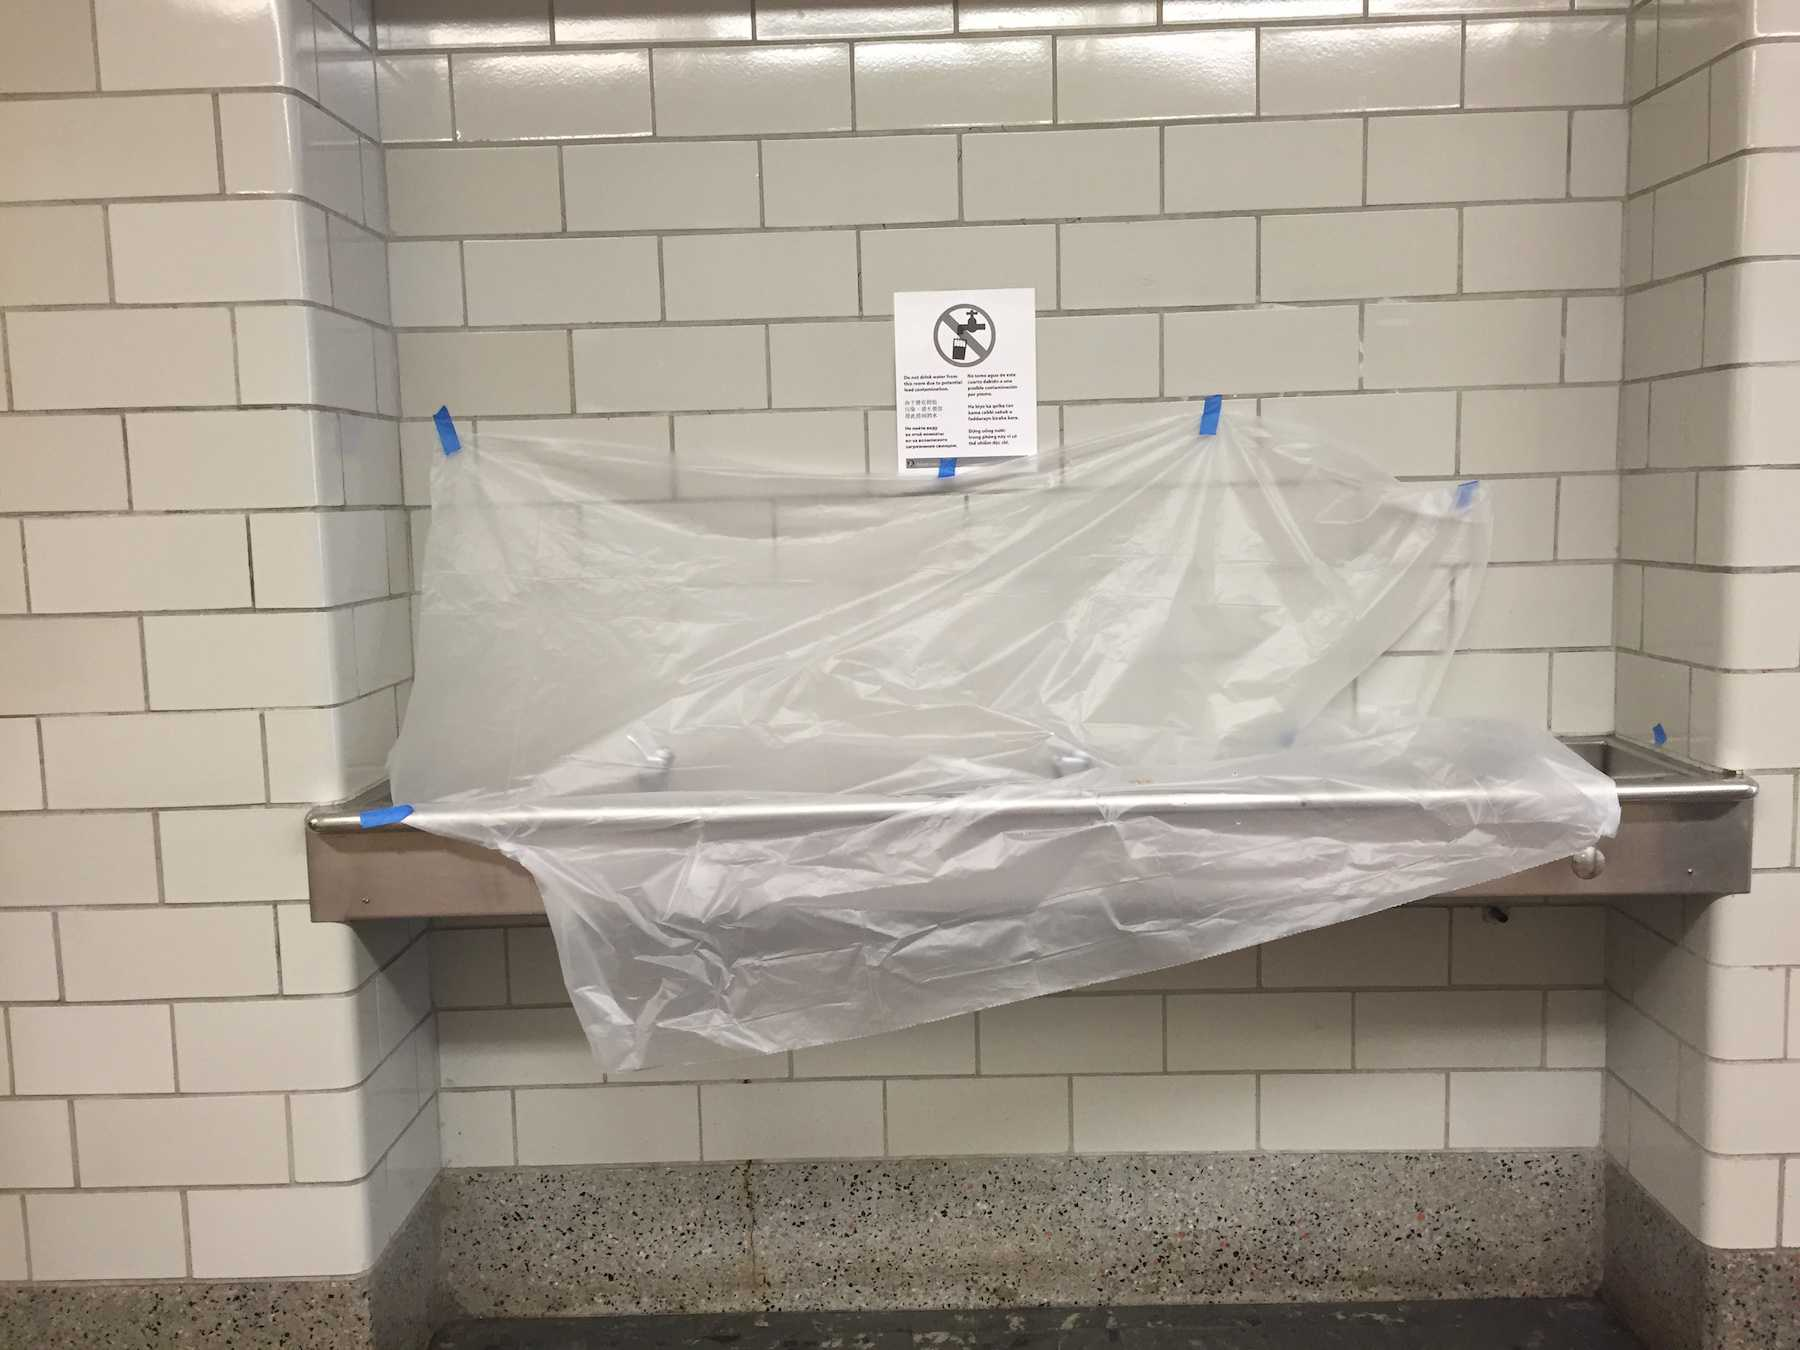 School Bathroom Fixtures the cardinal times : unsafe lead levels at lincoln mean fountains